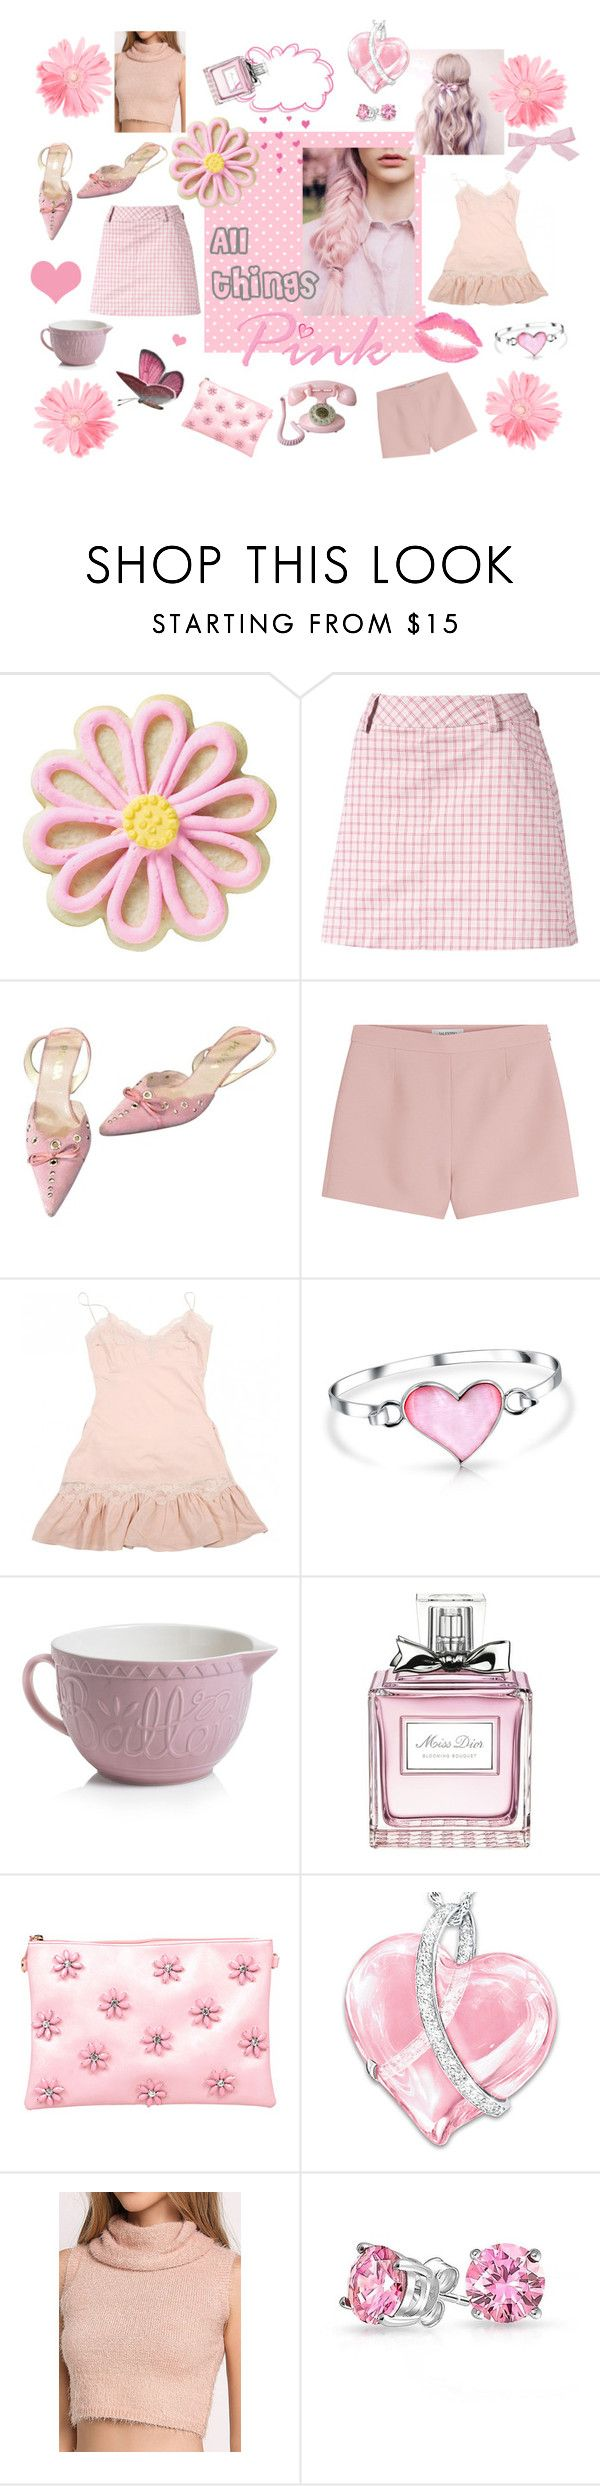 """All things Pink"" by myfashionvault on Polyvore featuring Wilton, Puma, Prada, Valentino, Manoush, Bling Jewelry, Mason Cash, Christian Dior, Vieta and The Bradford Exchange"